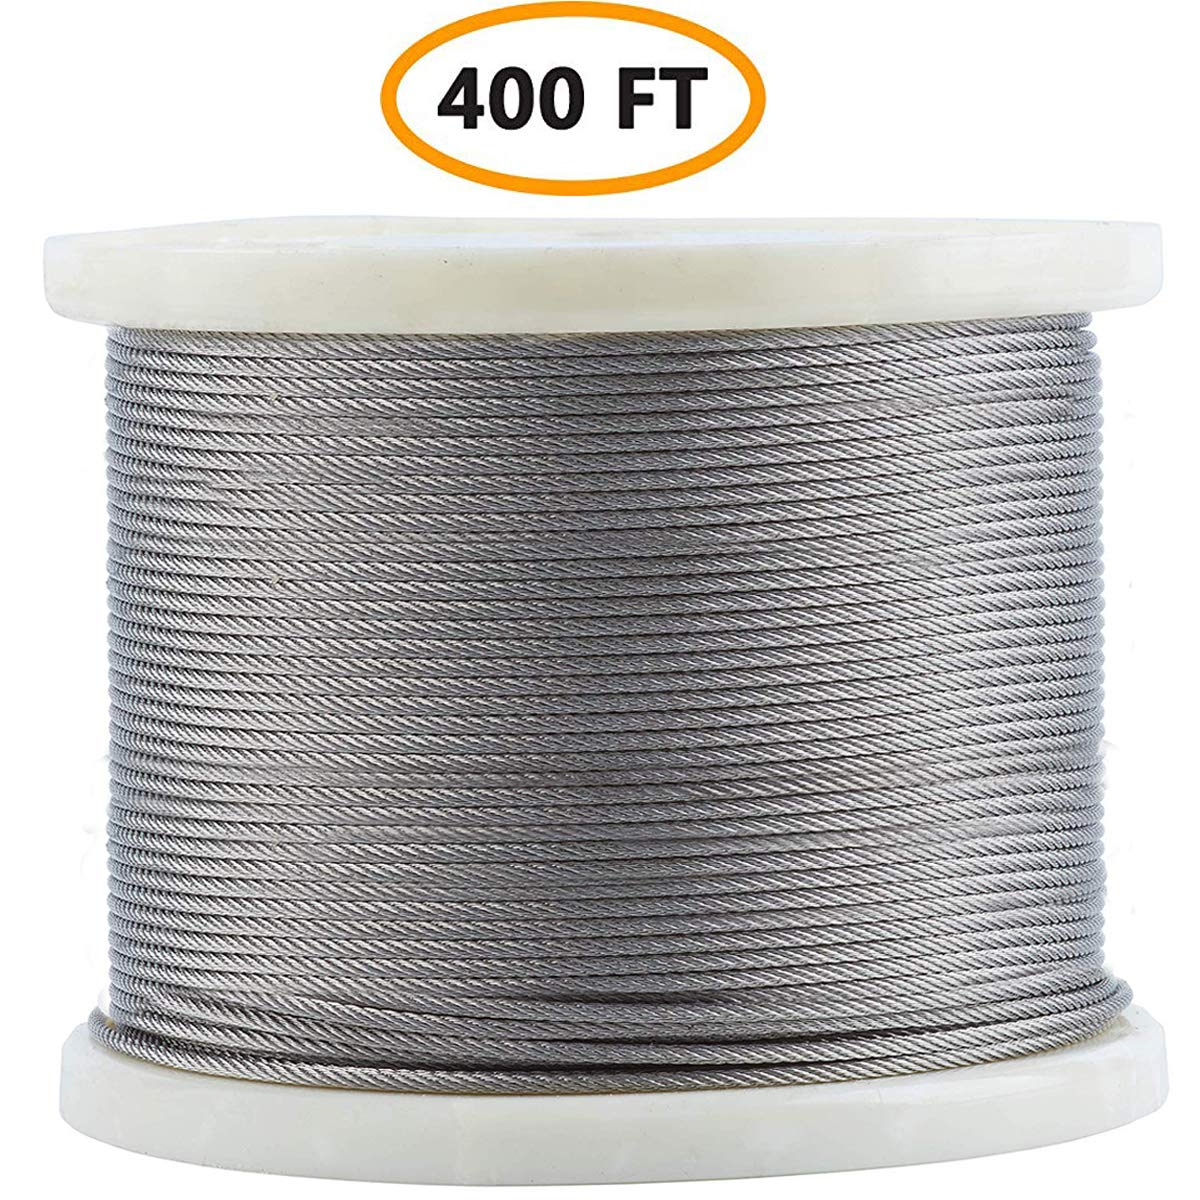 Bysn 316 1/8'' Stainless Steel Cable Aircraft Wire Rope for Cable Railing Kit,7x7 400Feet by Bysn